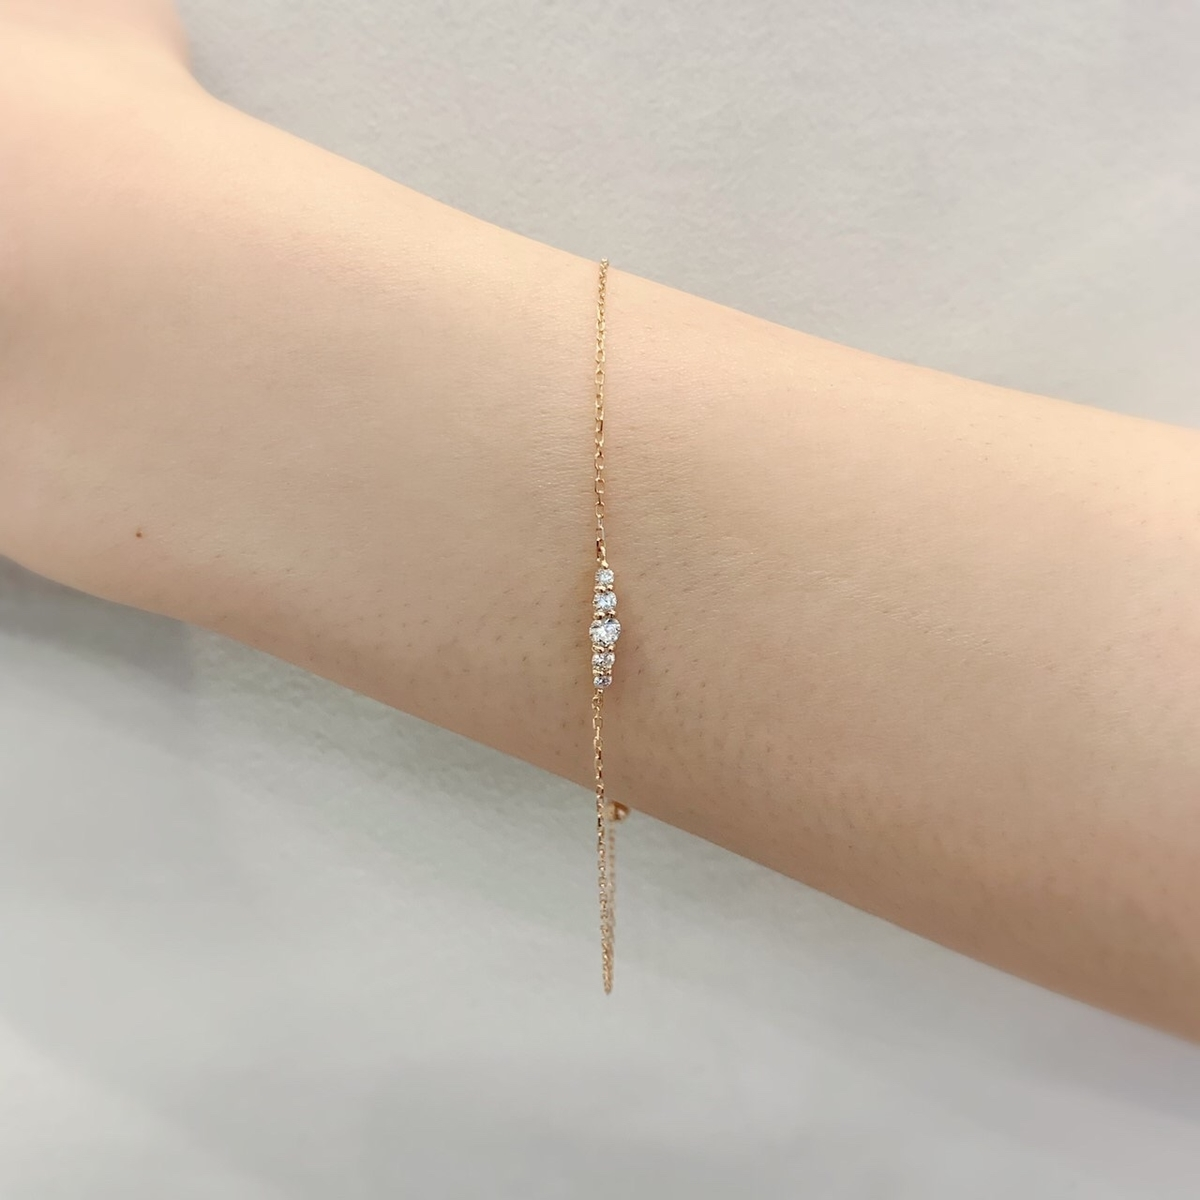 f:id:snow-jewelry-terrace:20190621144443j:plain